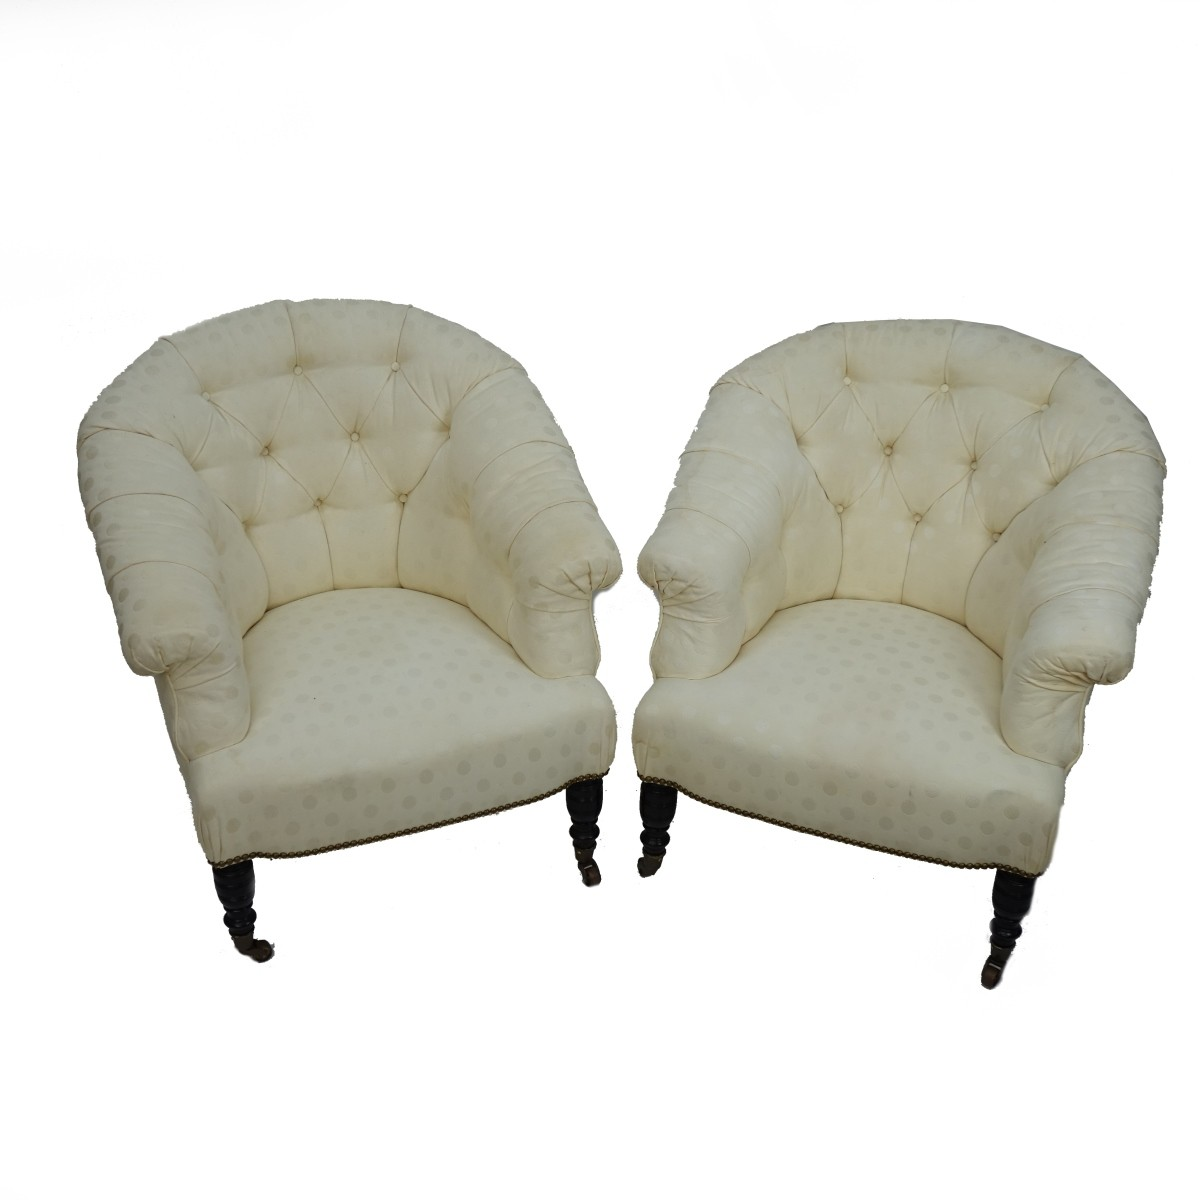 Pair of Upholstered Barrel Chairs